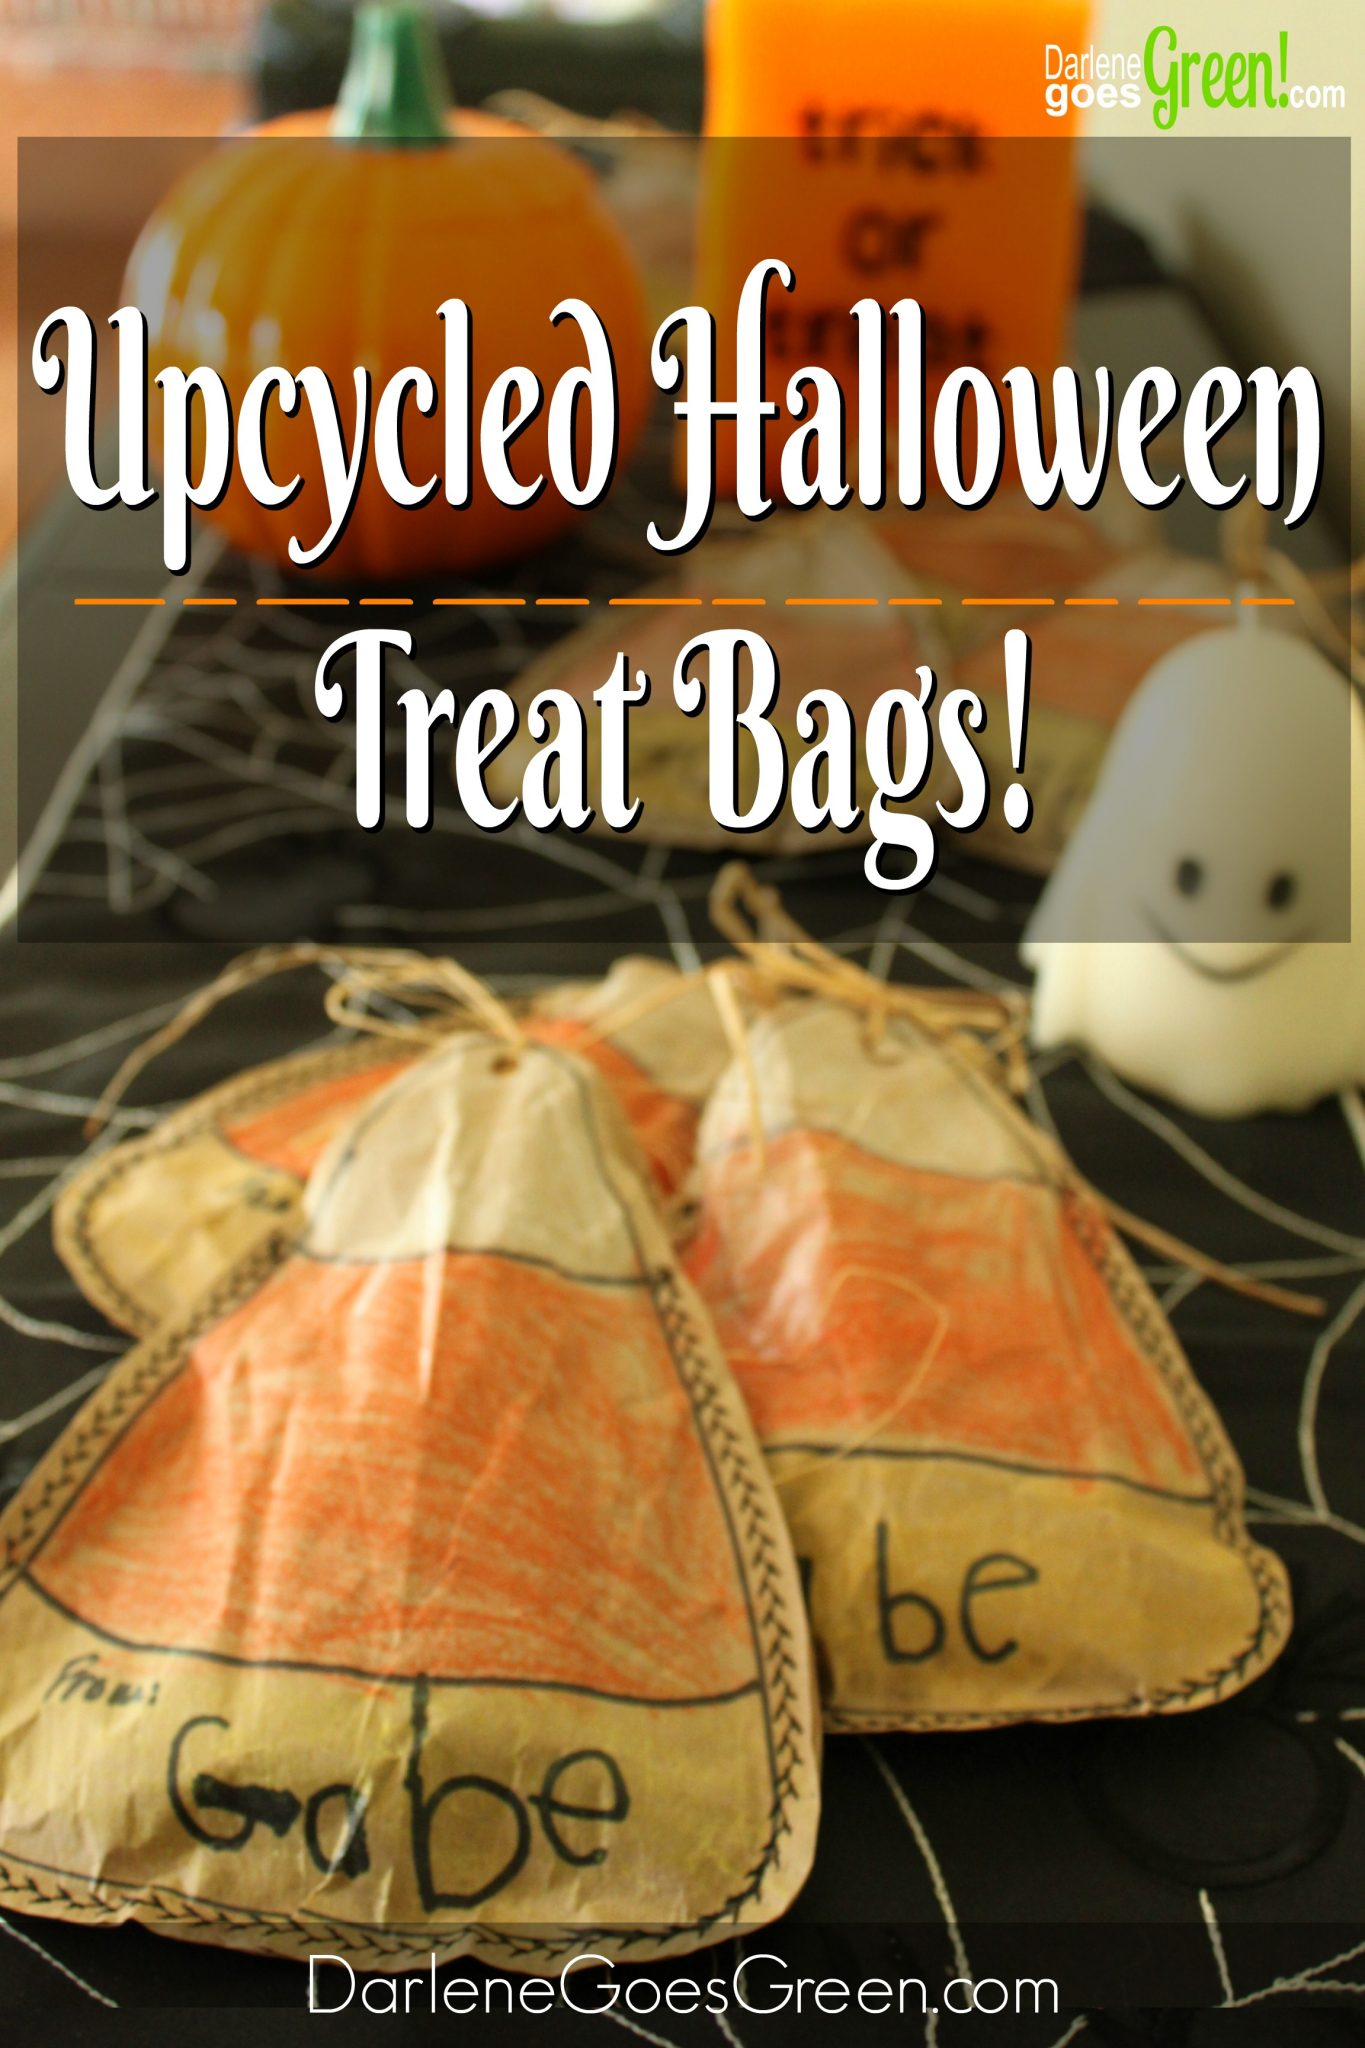 DIY Upcycled Treat Bags from Packing Paper